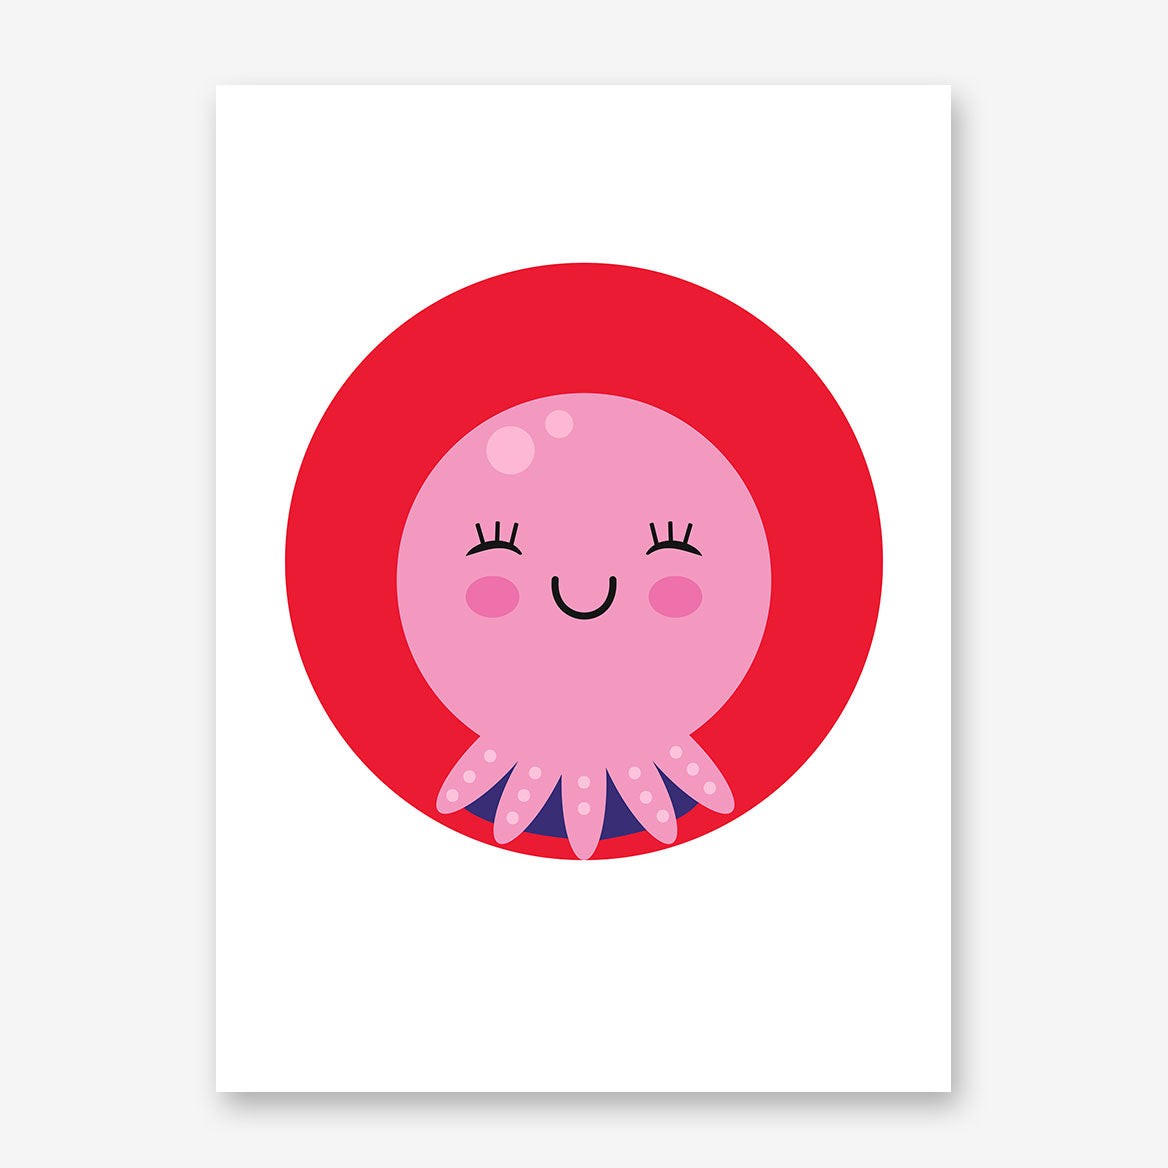 Nursery poster print with a happy pink octopus in a red circle.